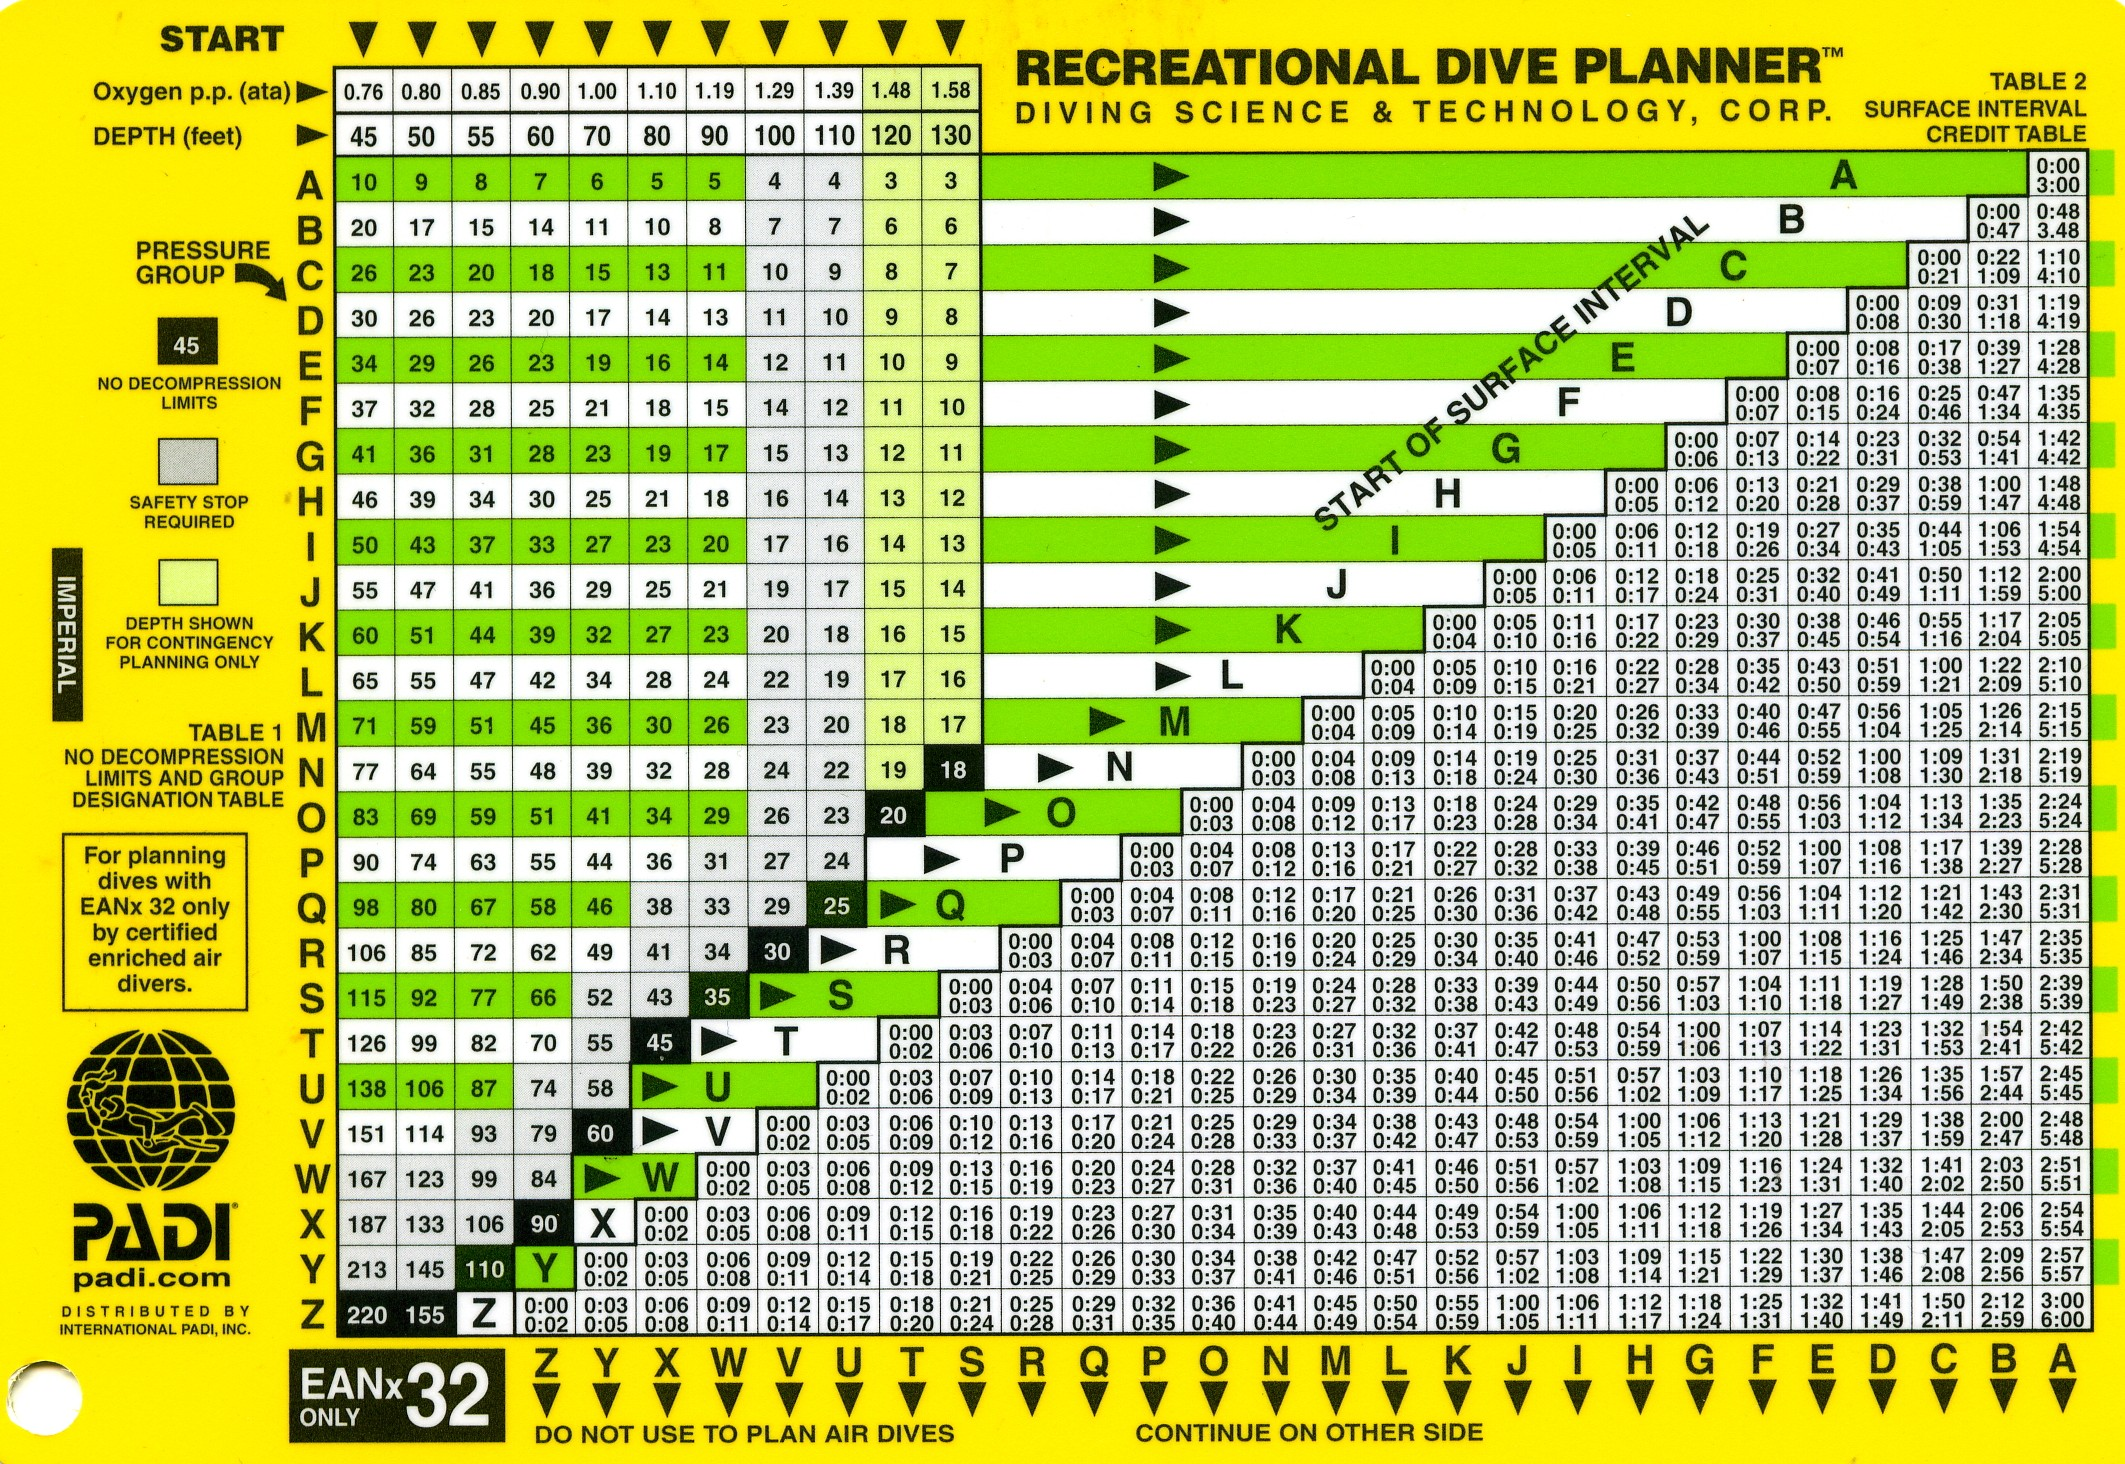 Padi Eanx Dive Tables on 7 Times Table Learning